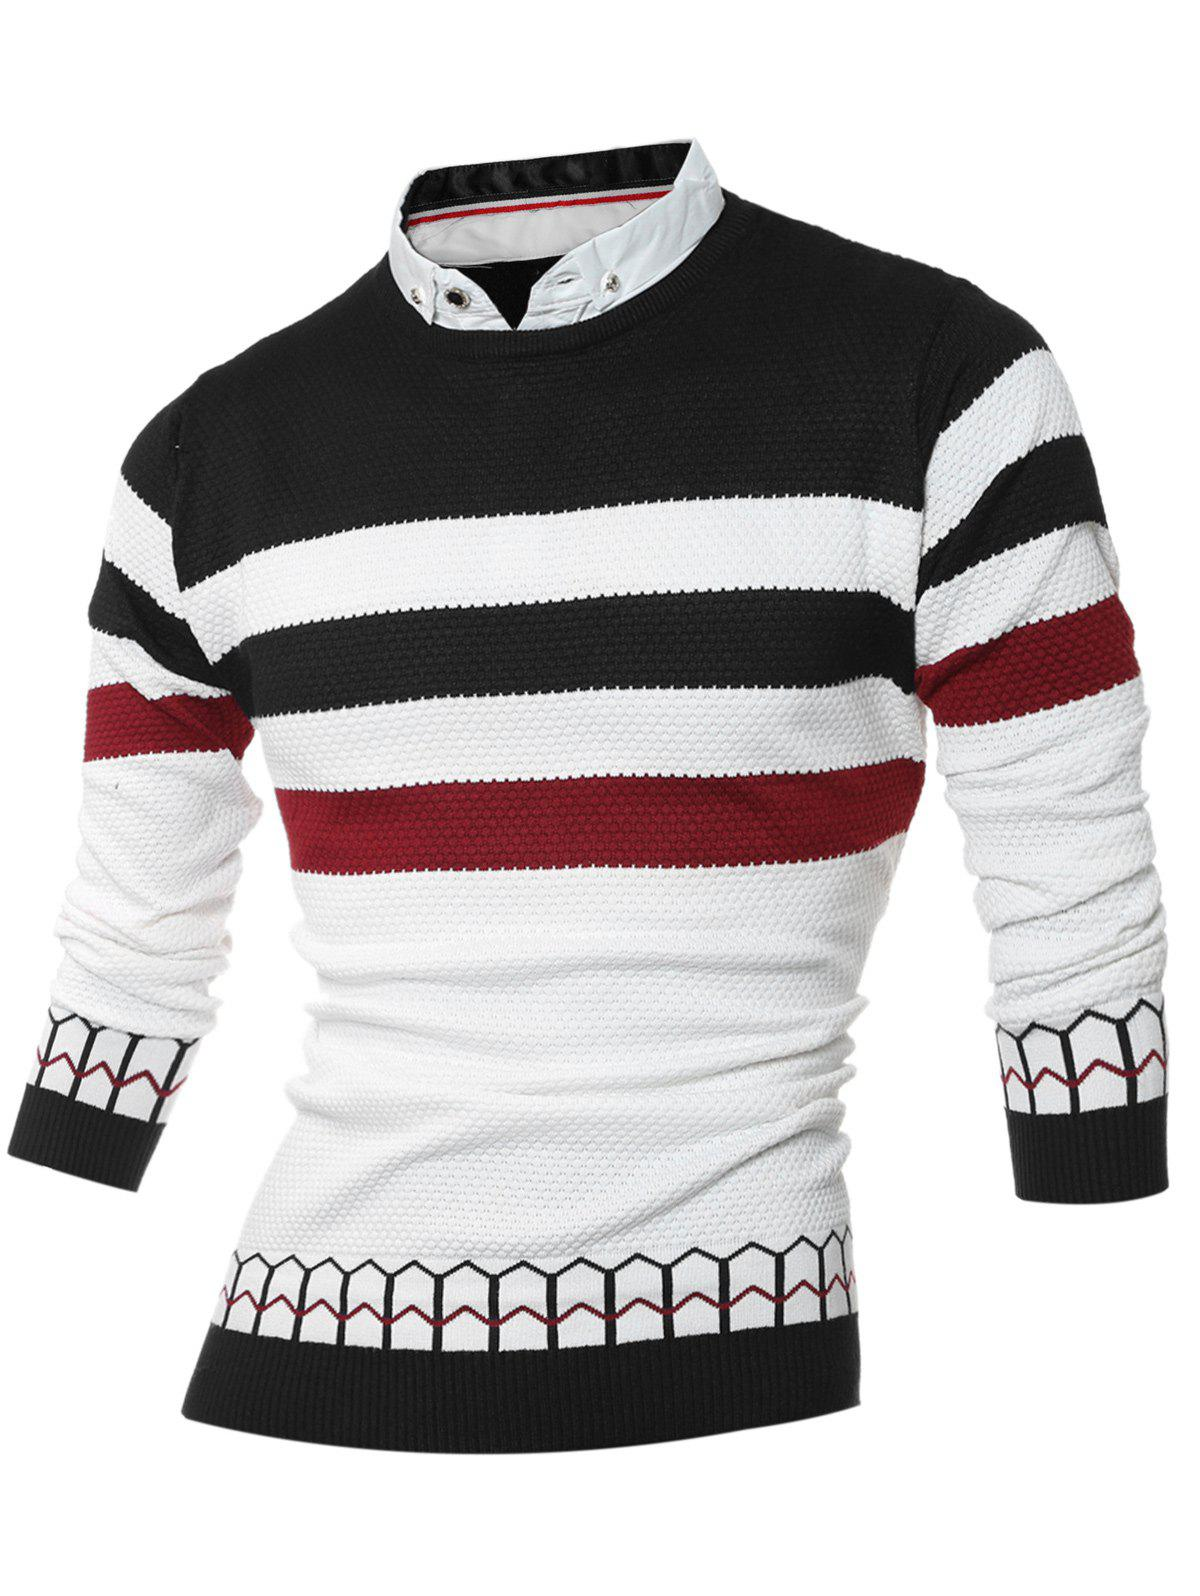 Faux Twinset Shirt Collar Color Block Stripe Spliced Knitting Sweater 201296010